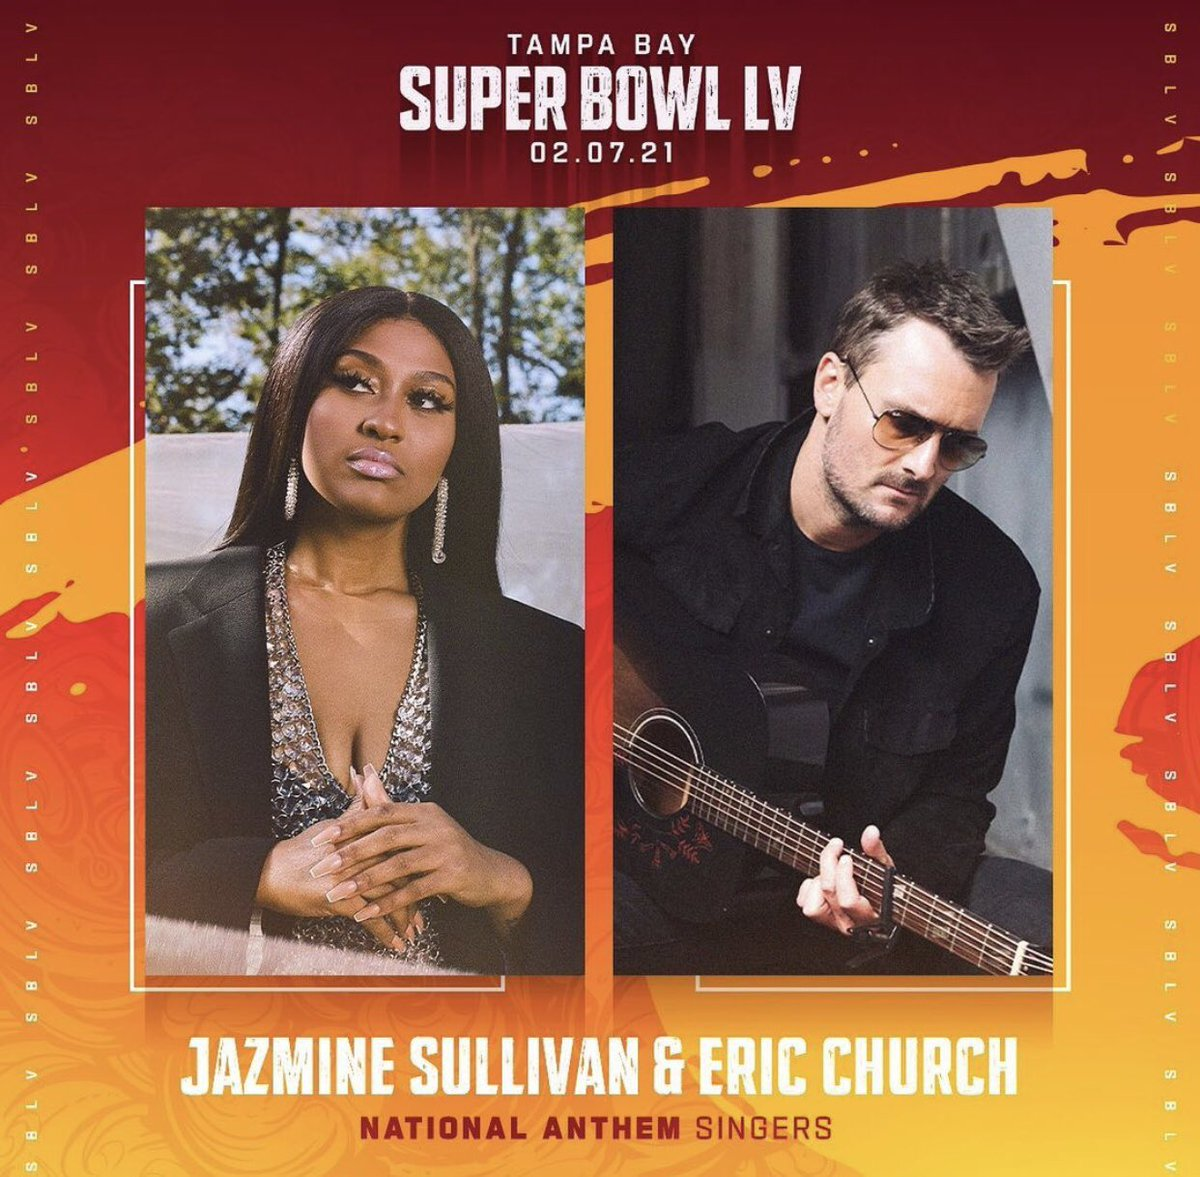 .@JSullivanMusic & @EricChurch to perform the National Anthem at the Super Bowl on February 7th. 🏈